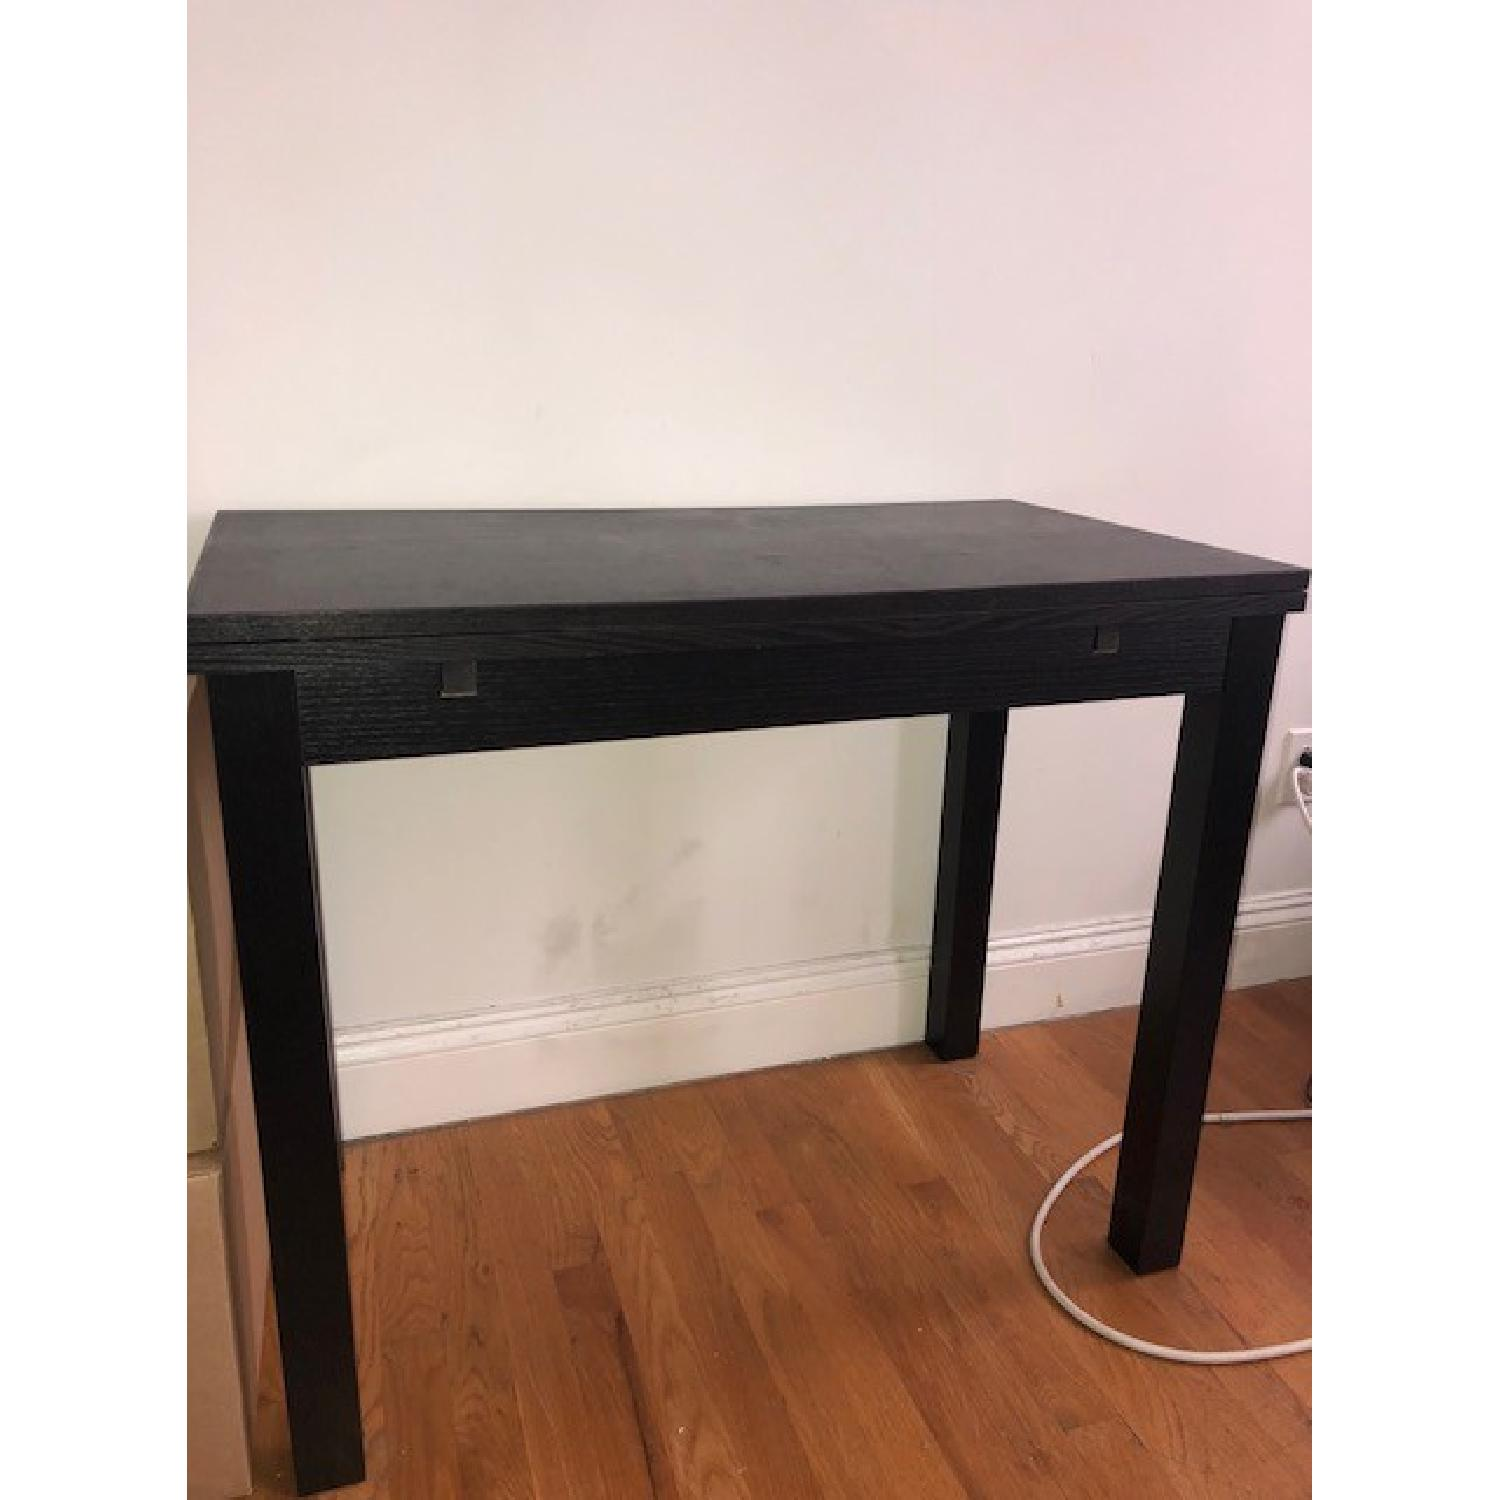 Ikea Black Wood Dining Table W/ 2 Chairs ...